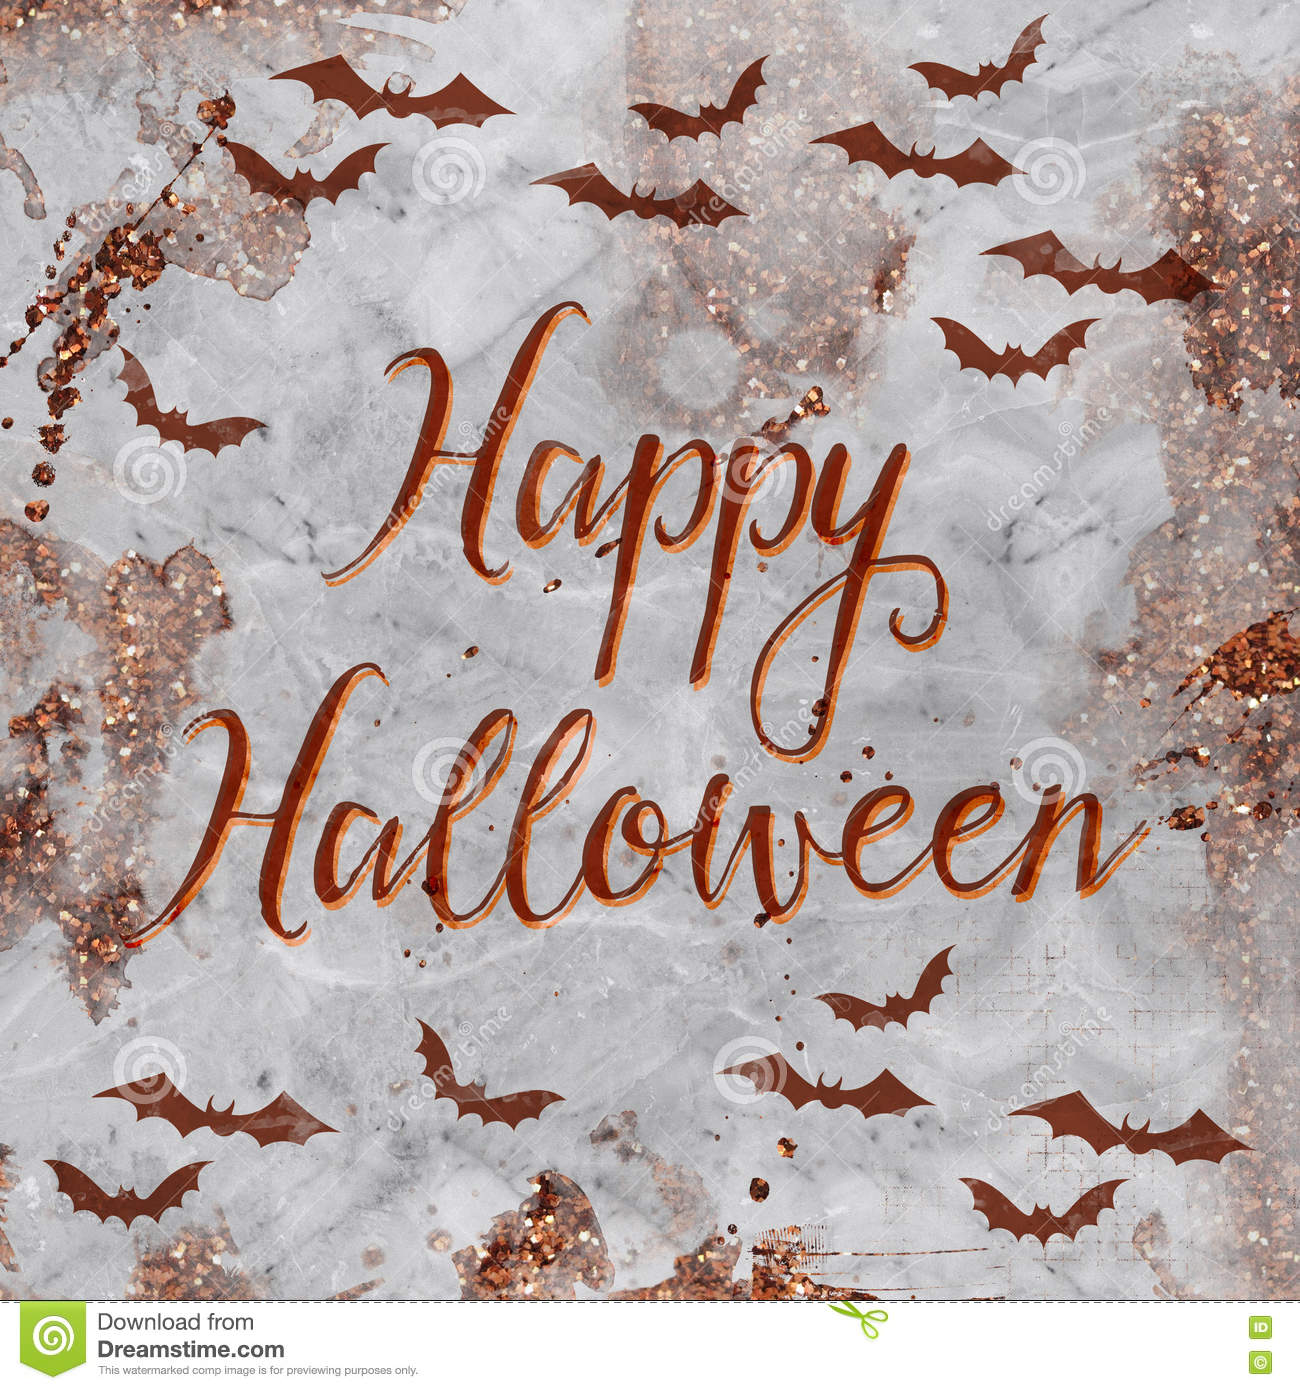 Fantastic Wallpaper Marble Calligraphy - halloween-greetings-copper-marble-textured-wallpaper-vintage-background-texture-celebrating-october-st-reads-happy-has-77720823  Best Photo Reference_526039.jpg